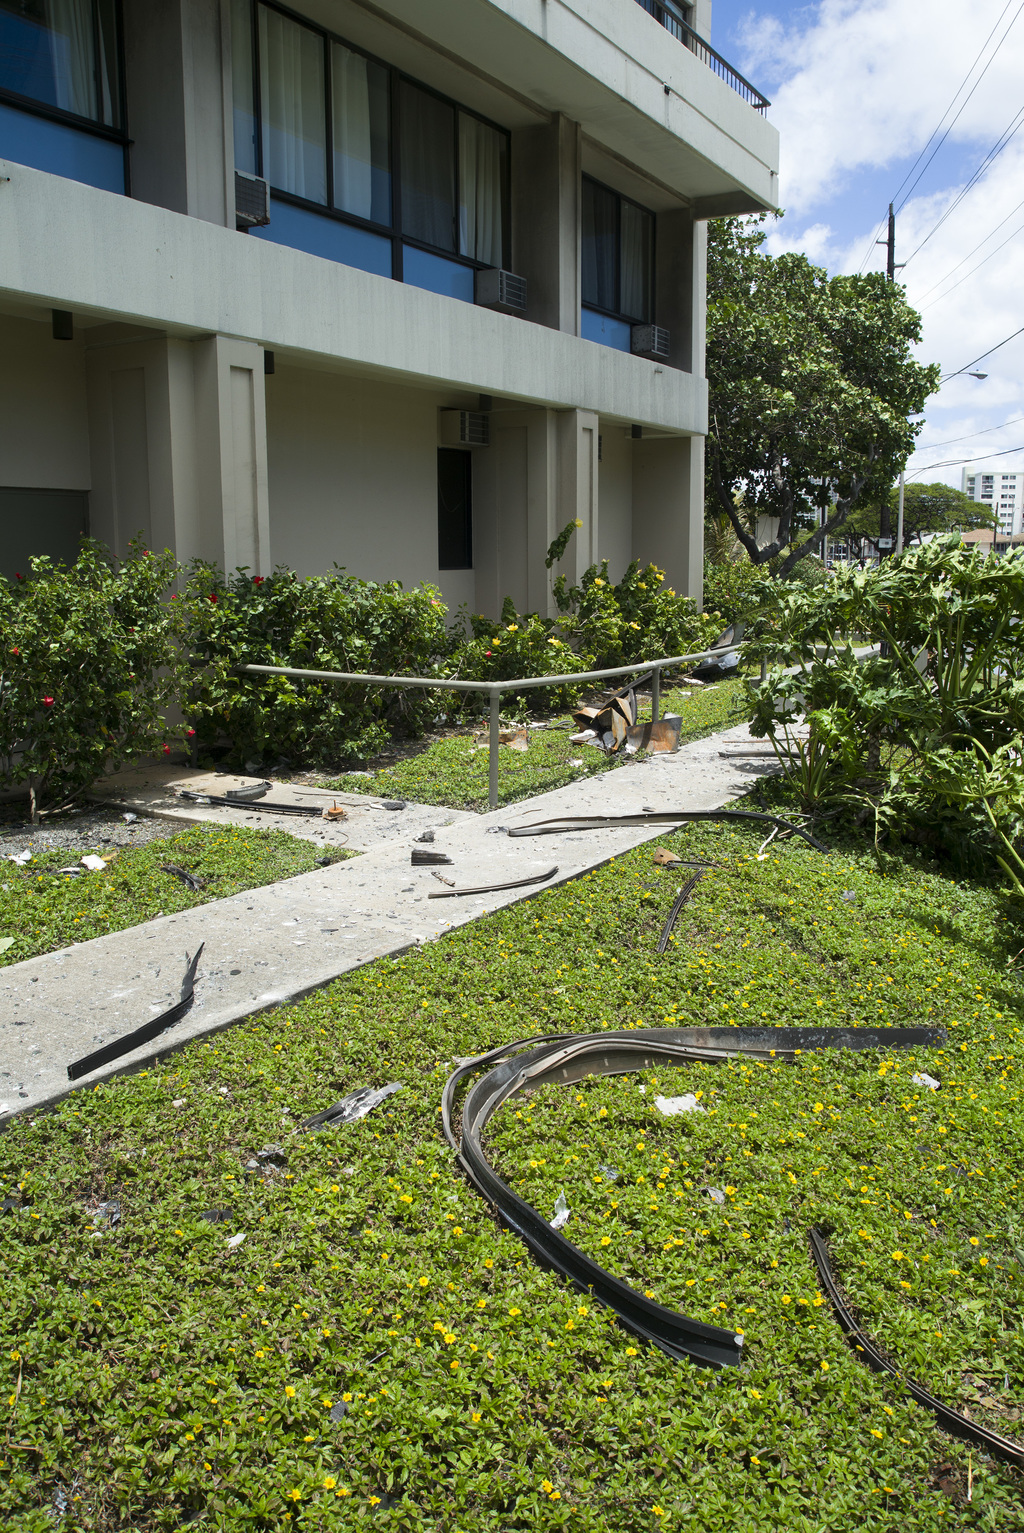 Debris that fell from a fire at the Marco Polo residence lays on the front lawn of the building, Saturday, July 15, 2017, in Honolulu. A fire broke ou...